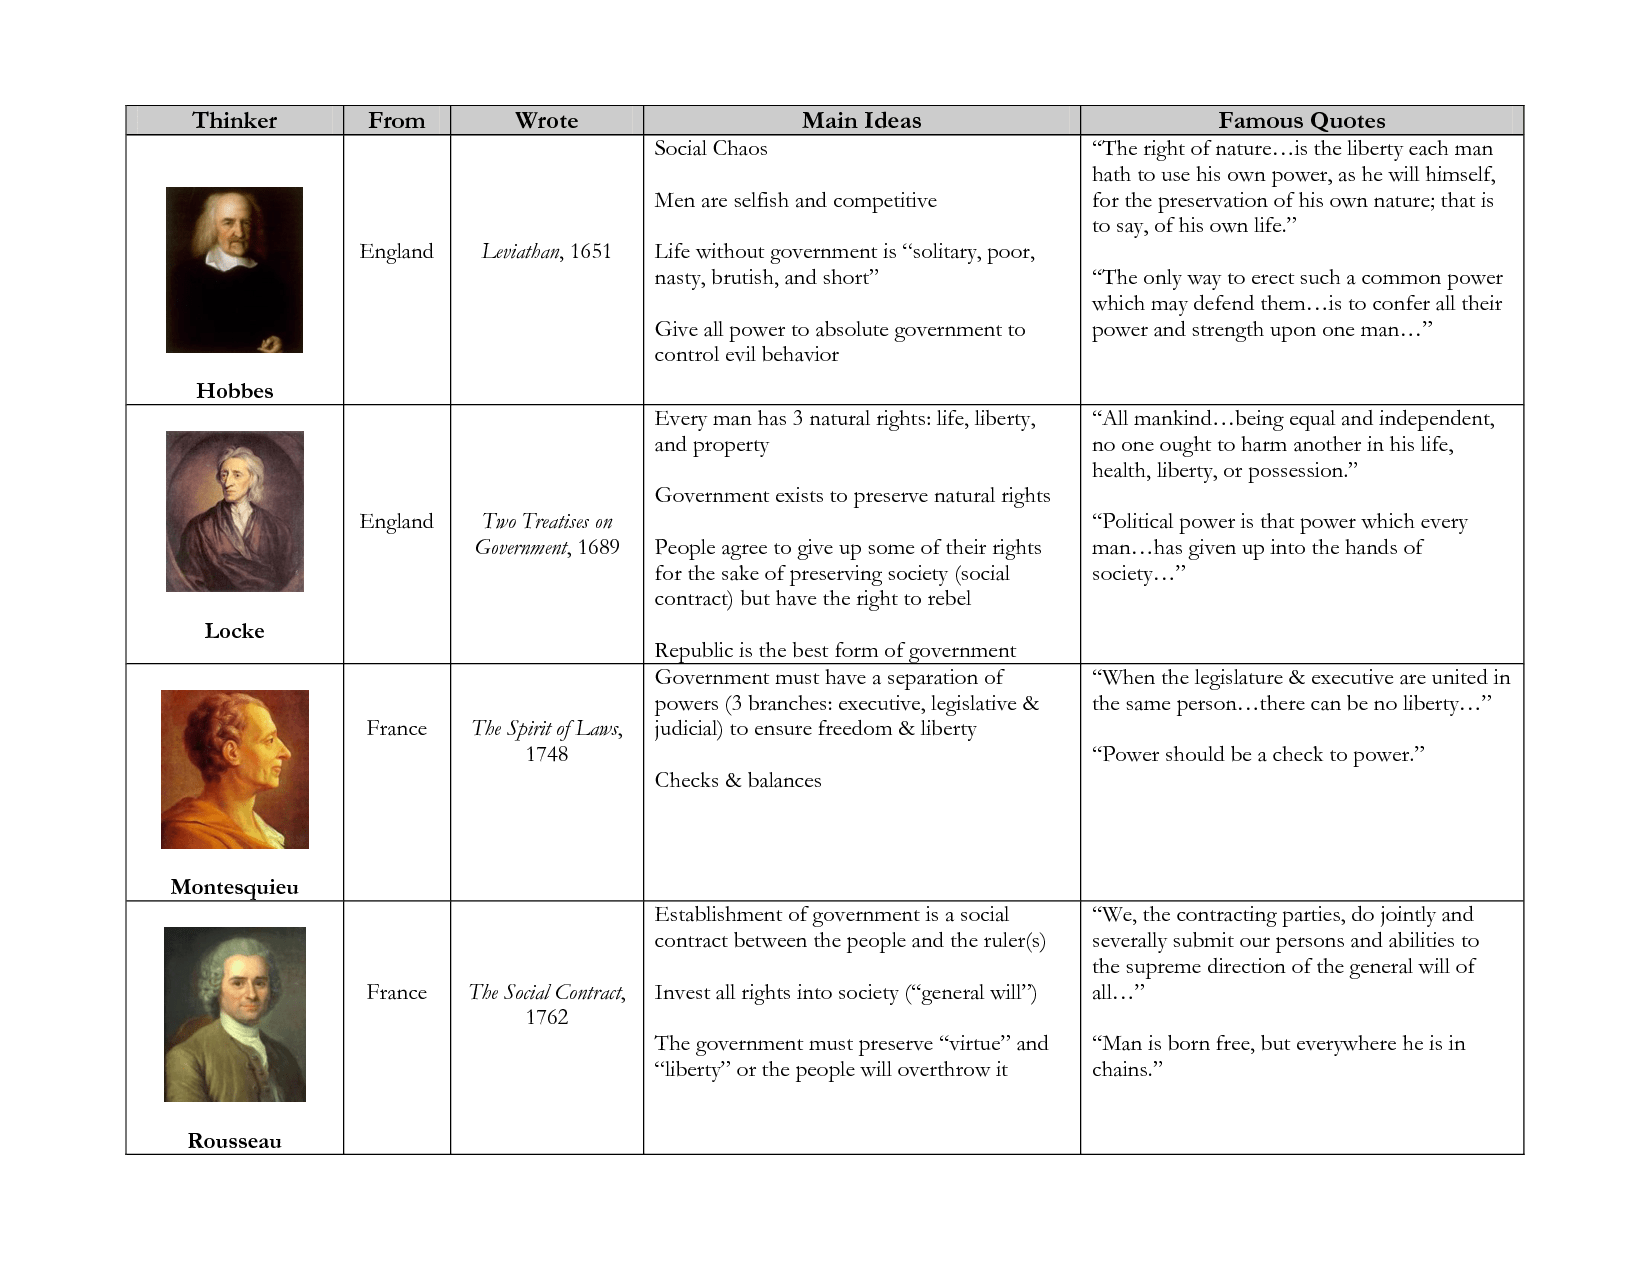 Enlightenment Thinkers Chart By 3yk4i0u Has The Enlightenment Thinkers Includes Their Main